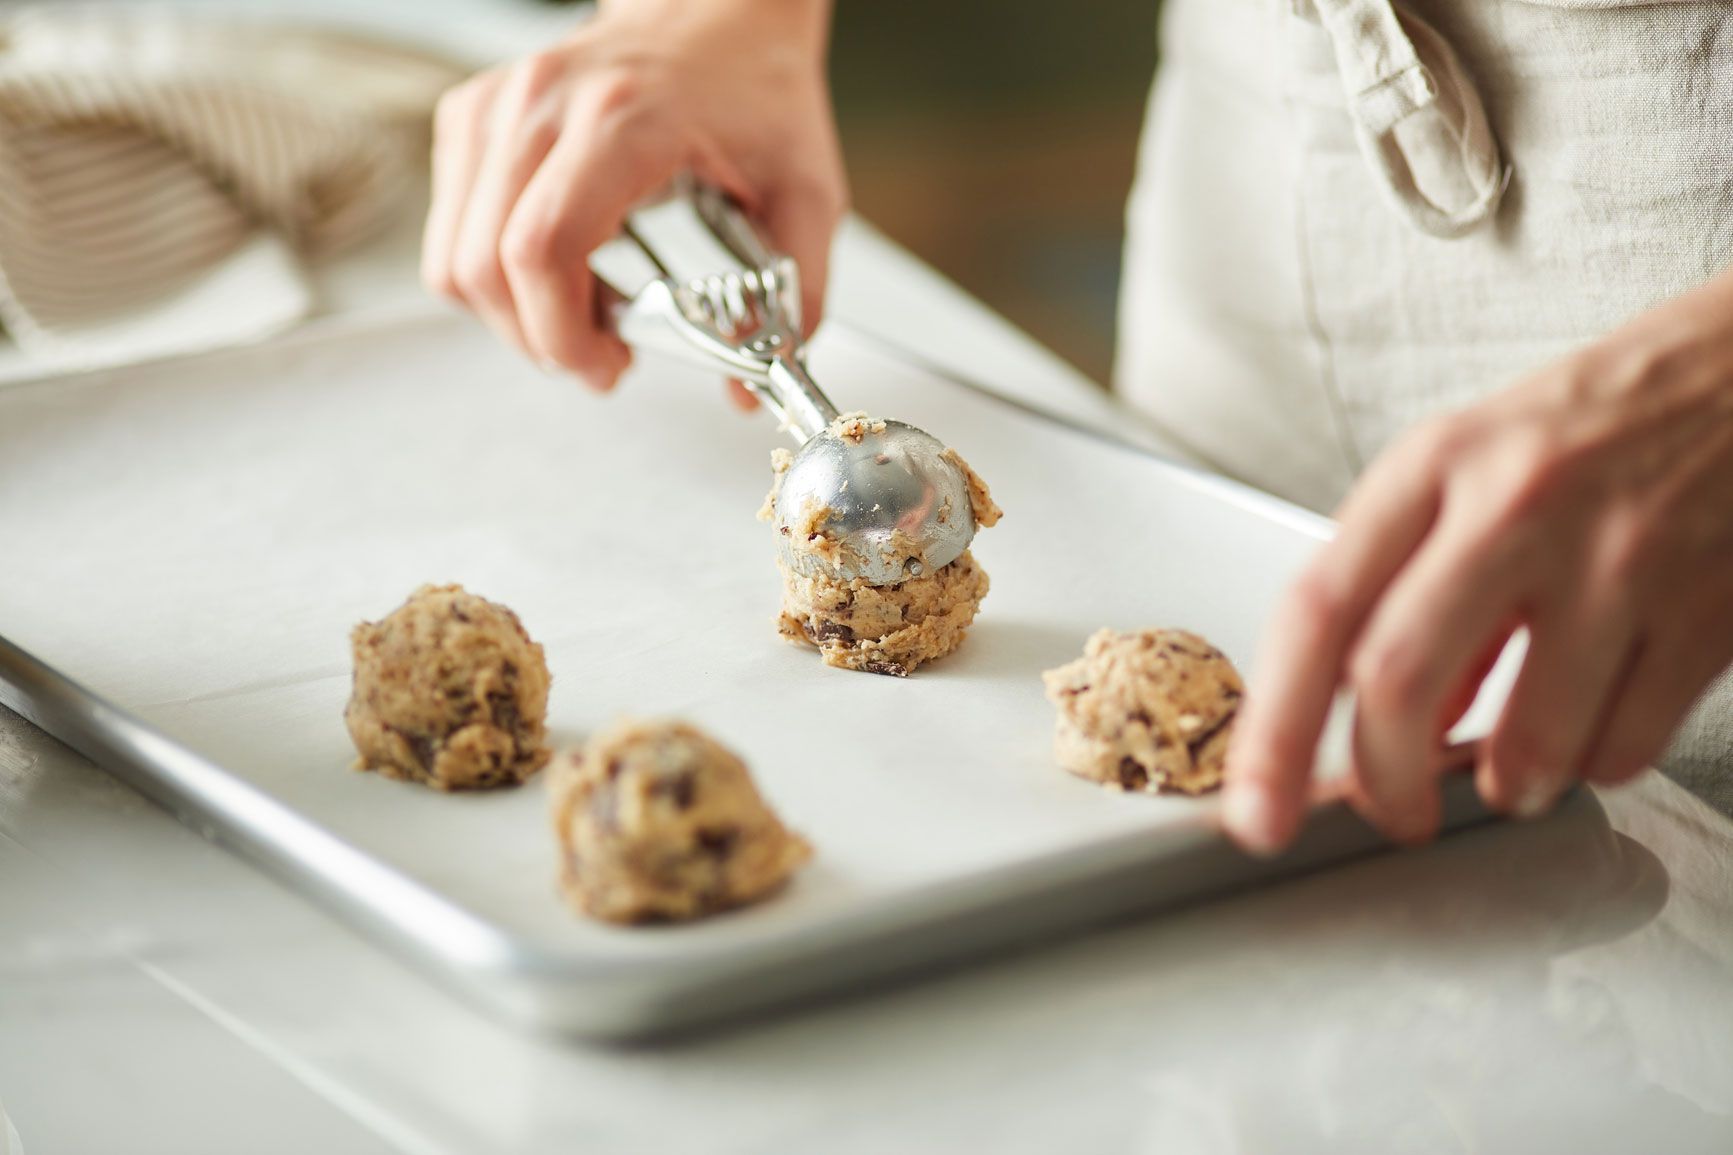 Scooping cookie dough onto a sheet pan